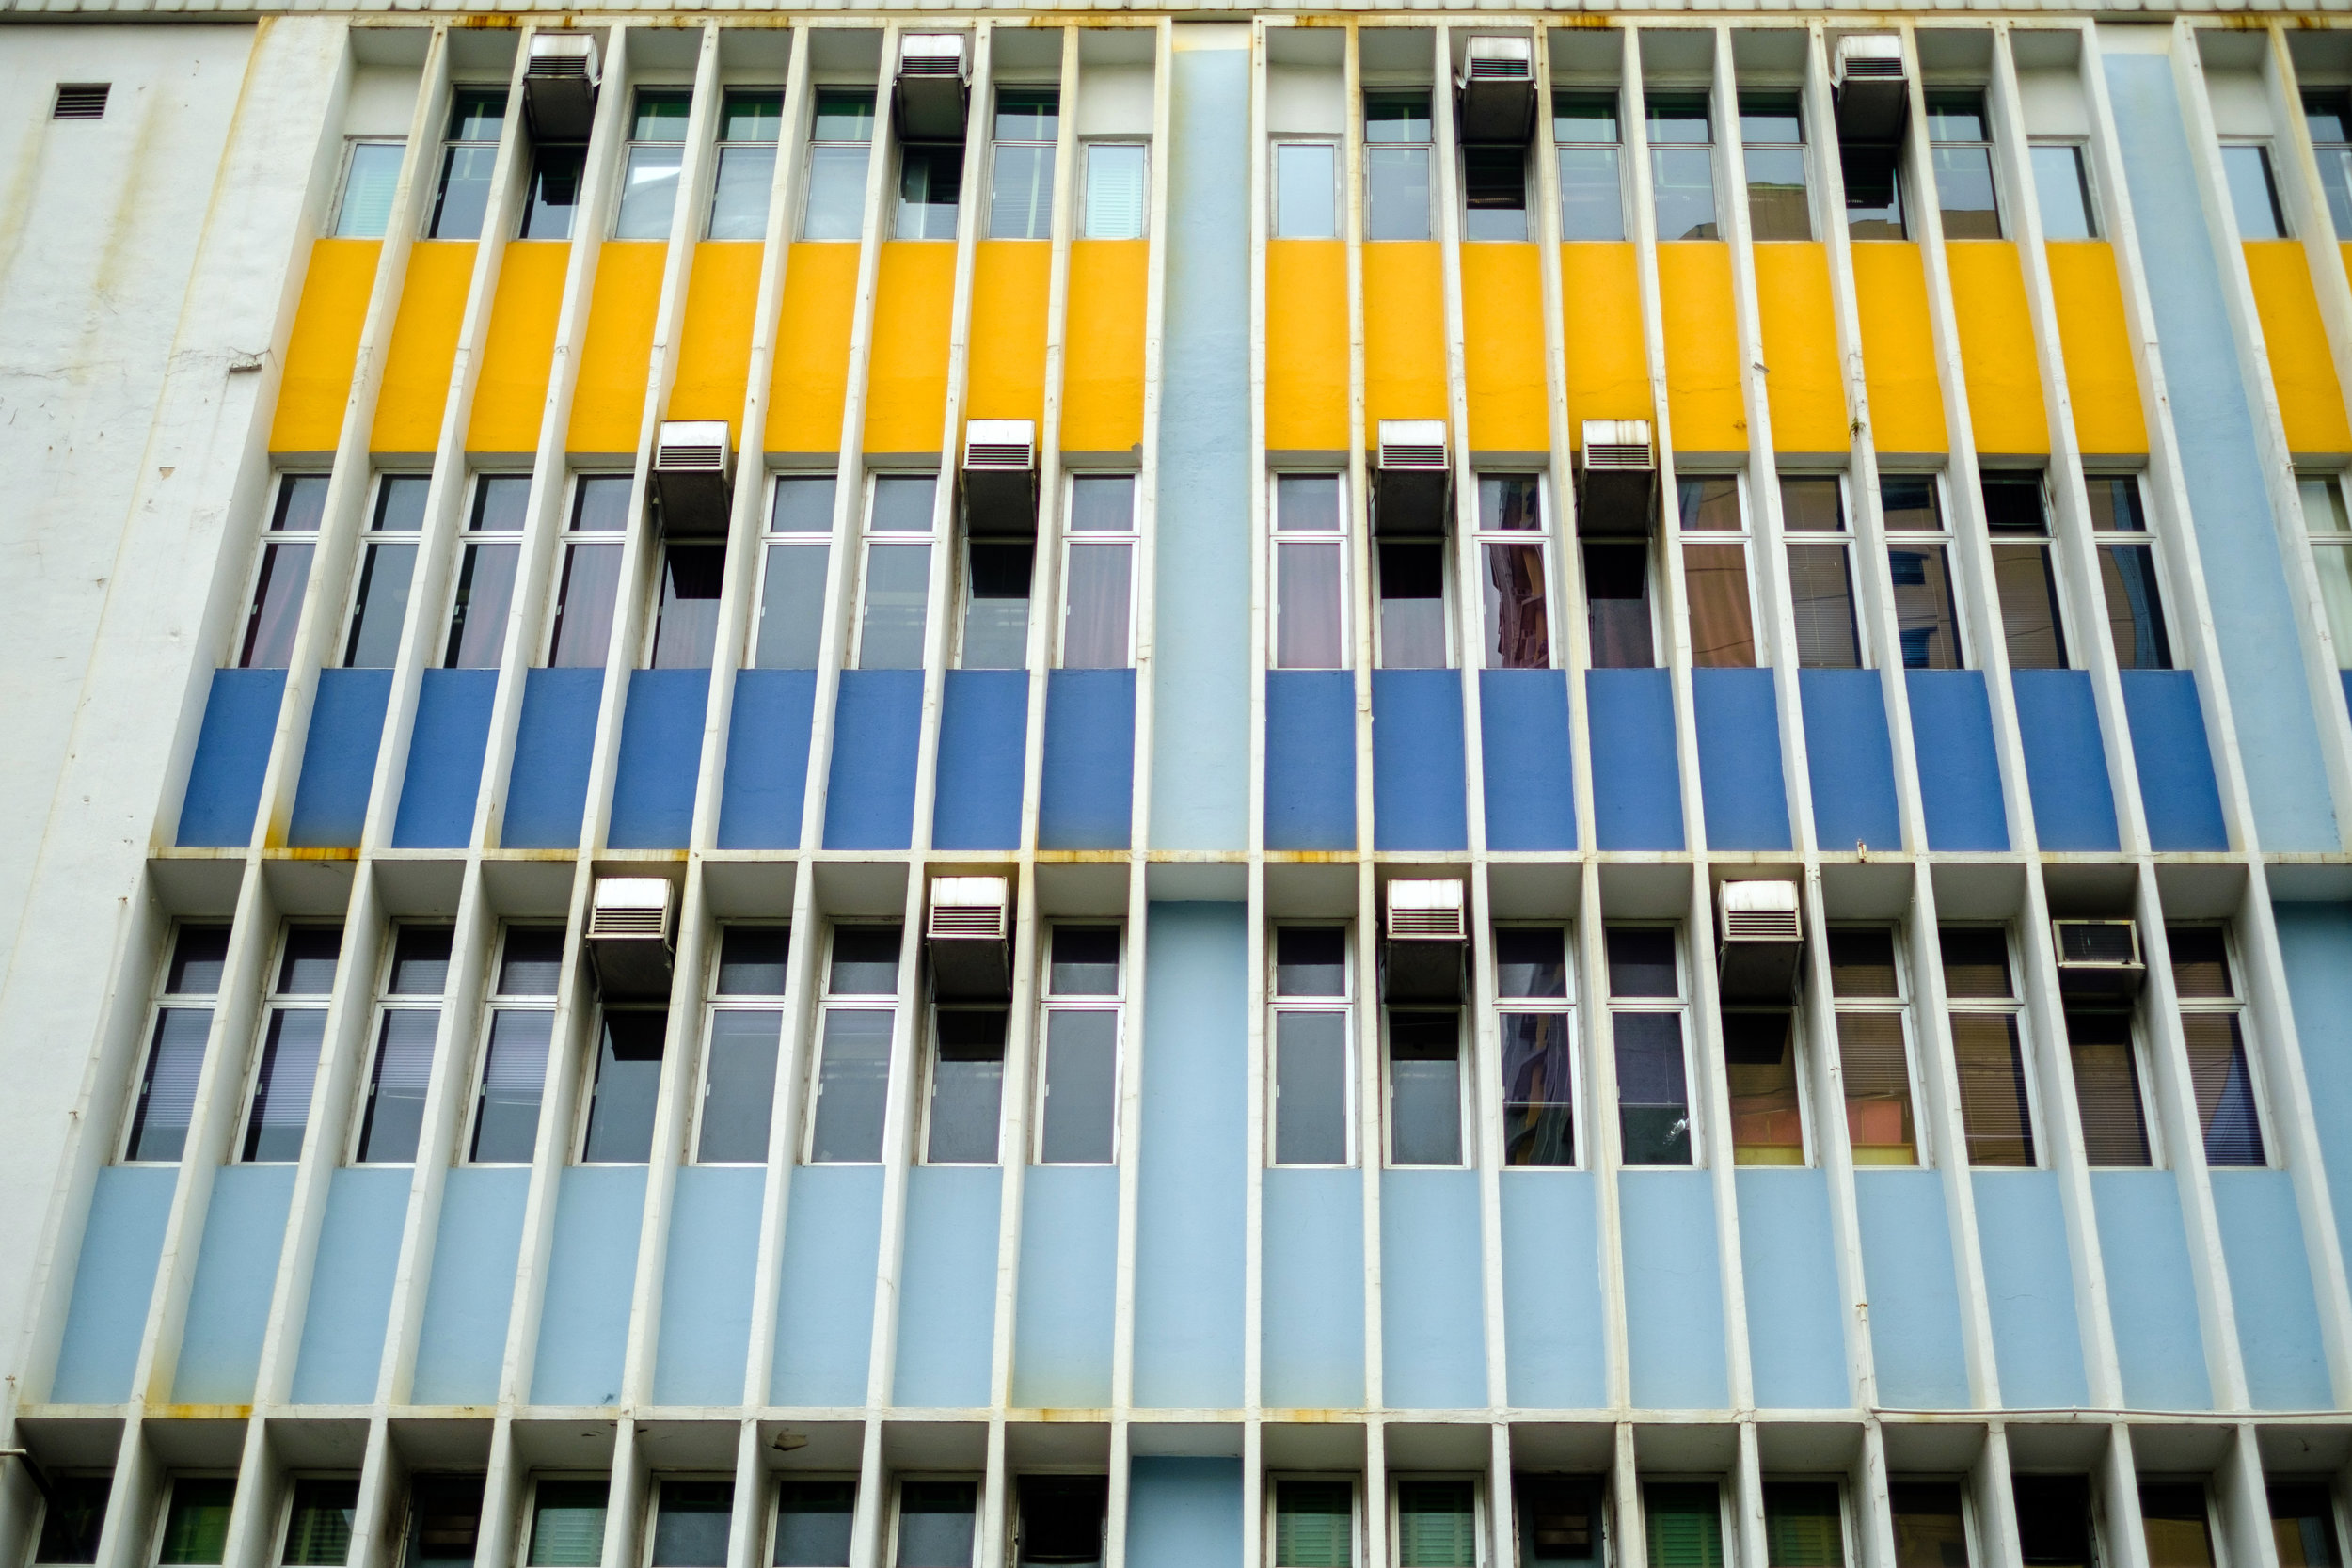 Apartment Building in Kowloon Hong Kong with colourful accent colours